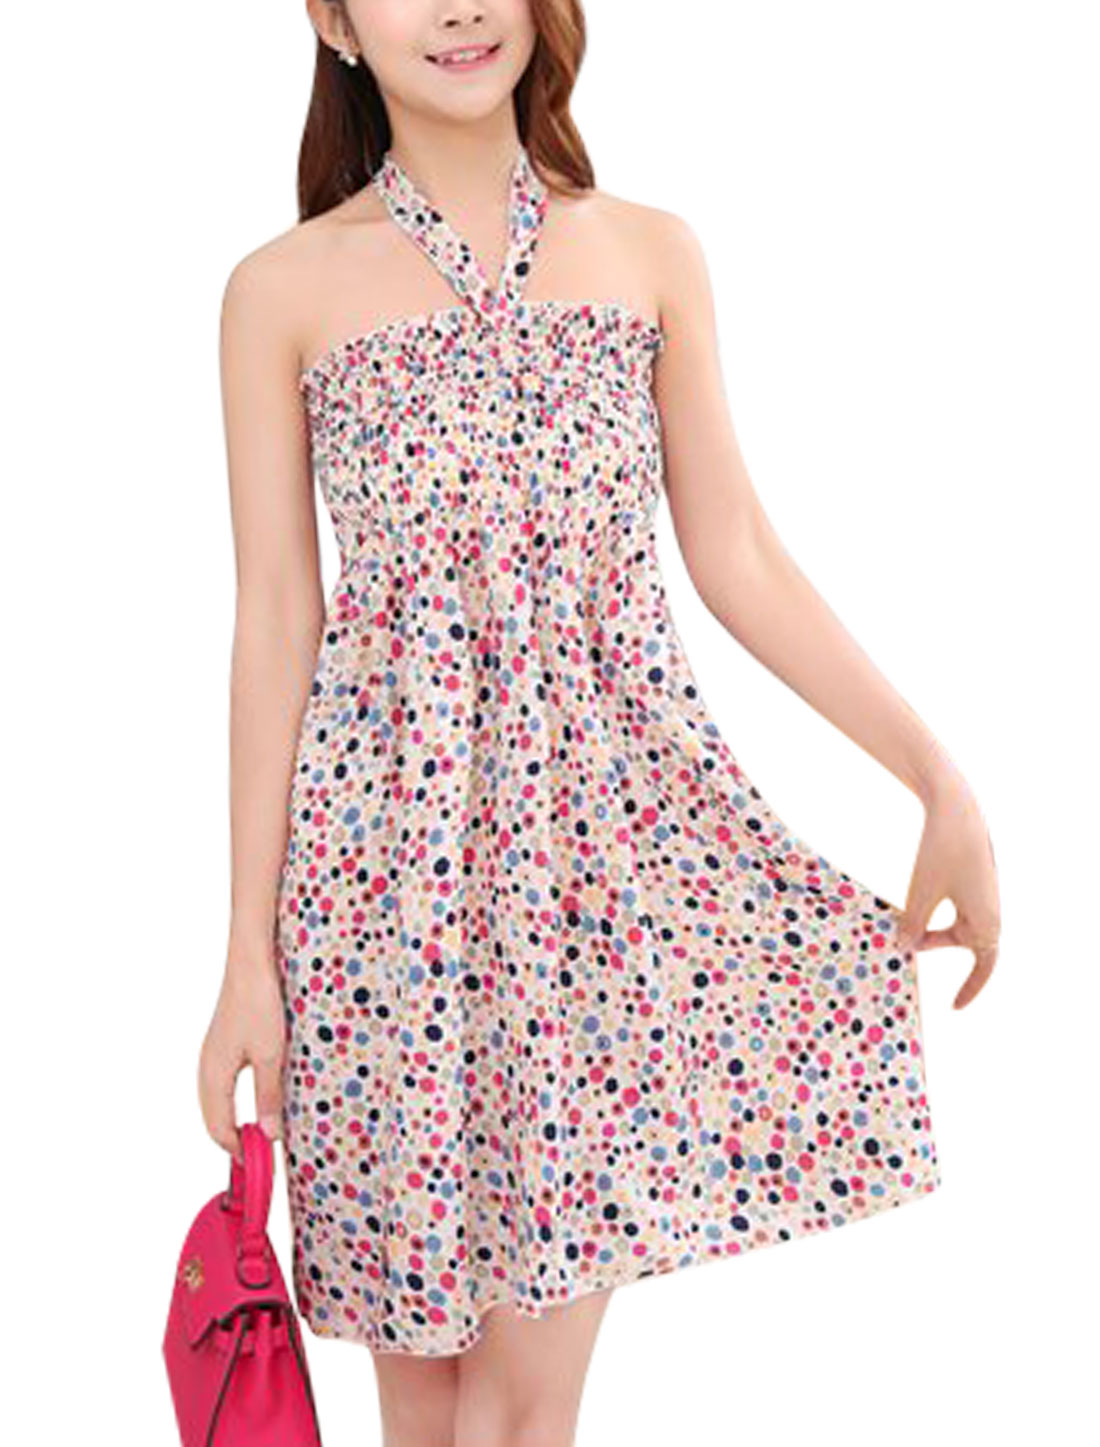 Ladies Halter Neck Dots Floral Print Casual Beach Dress Fuchsia Beige S